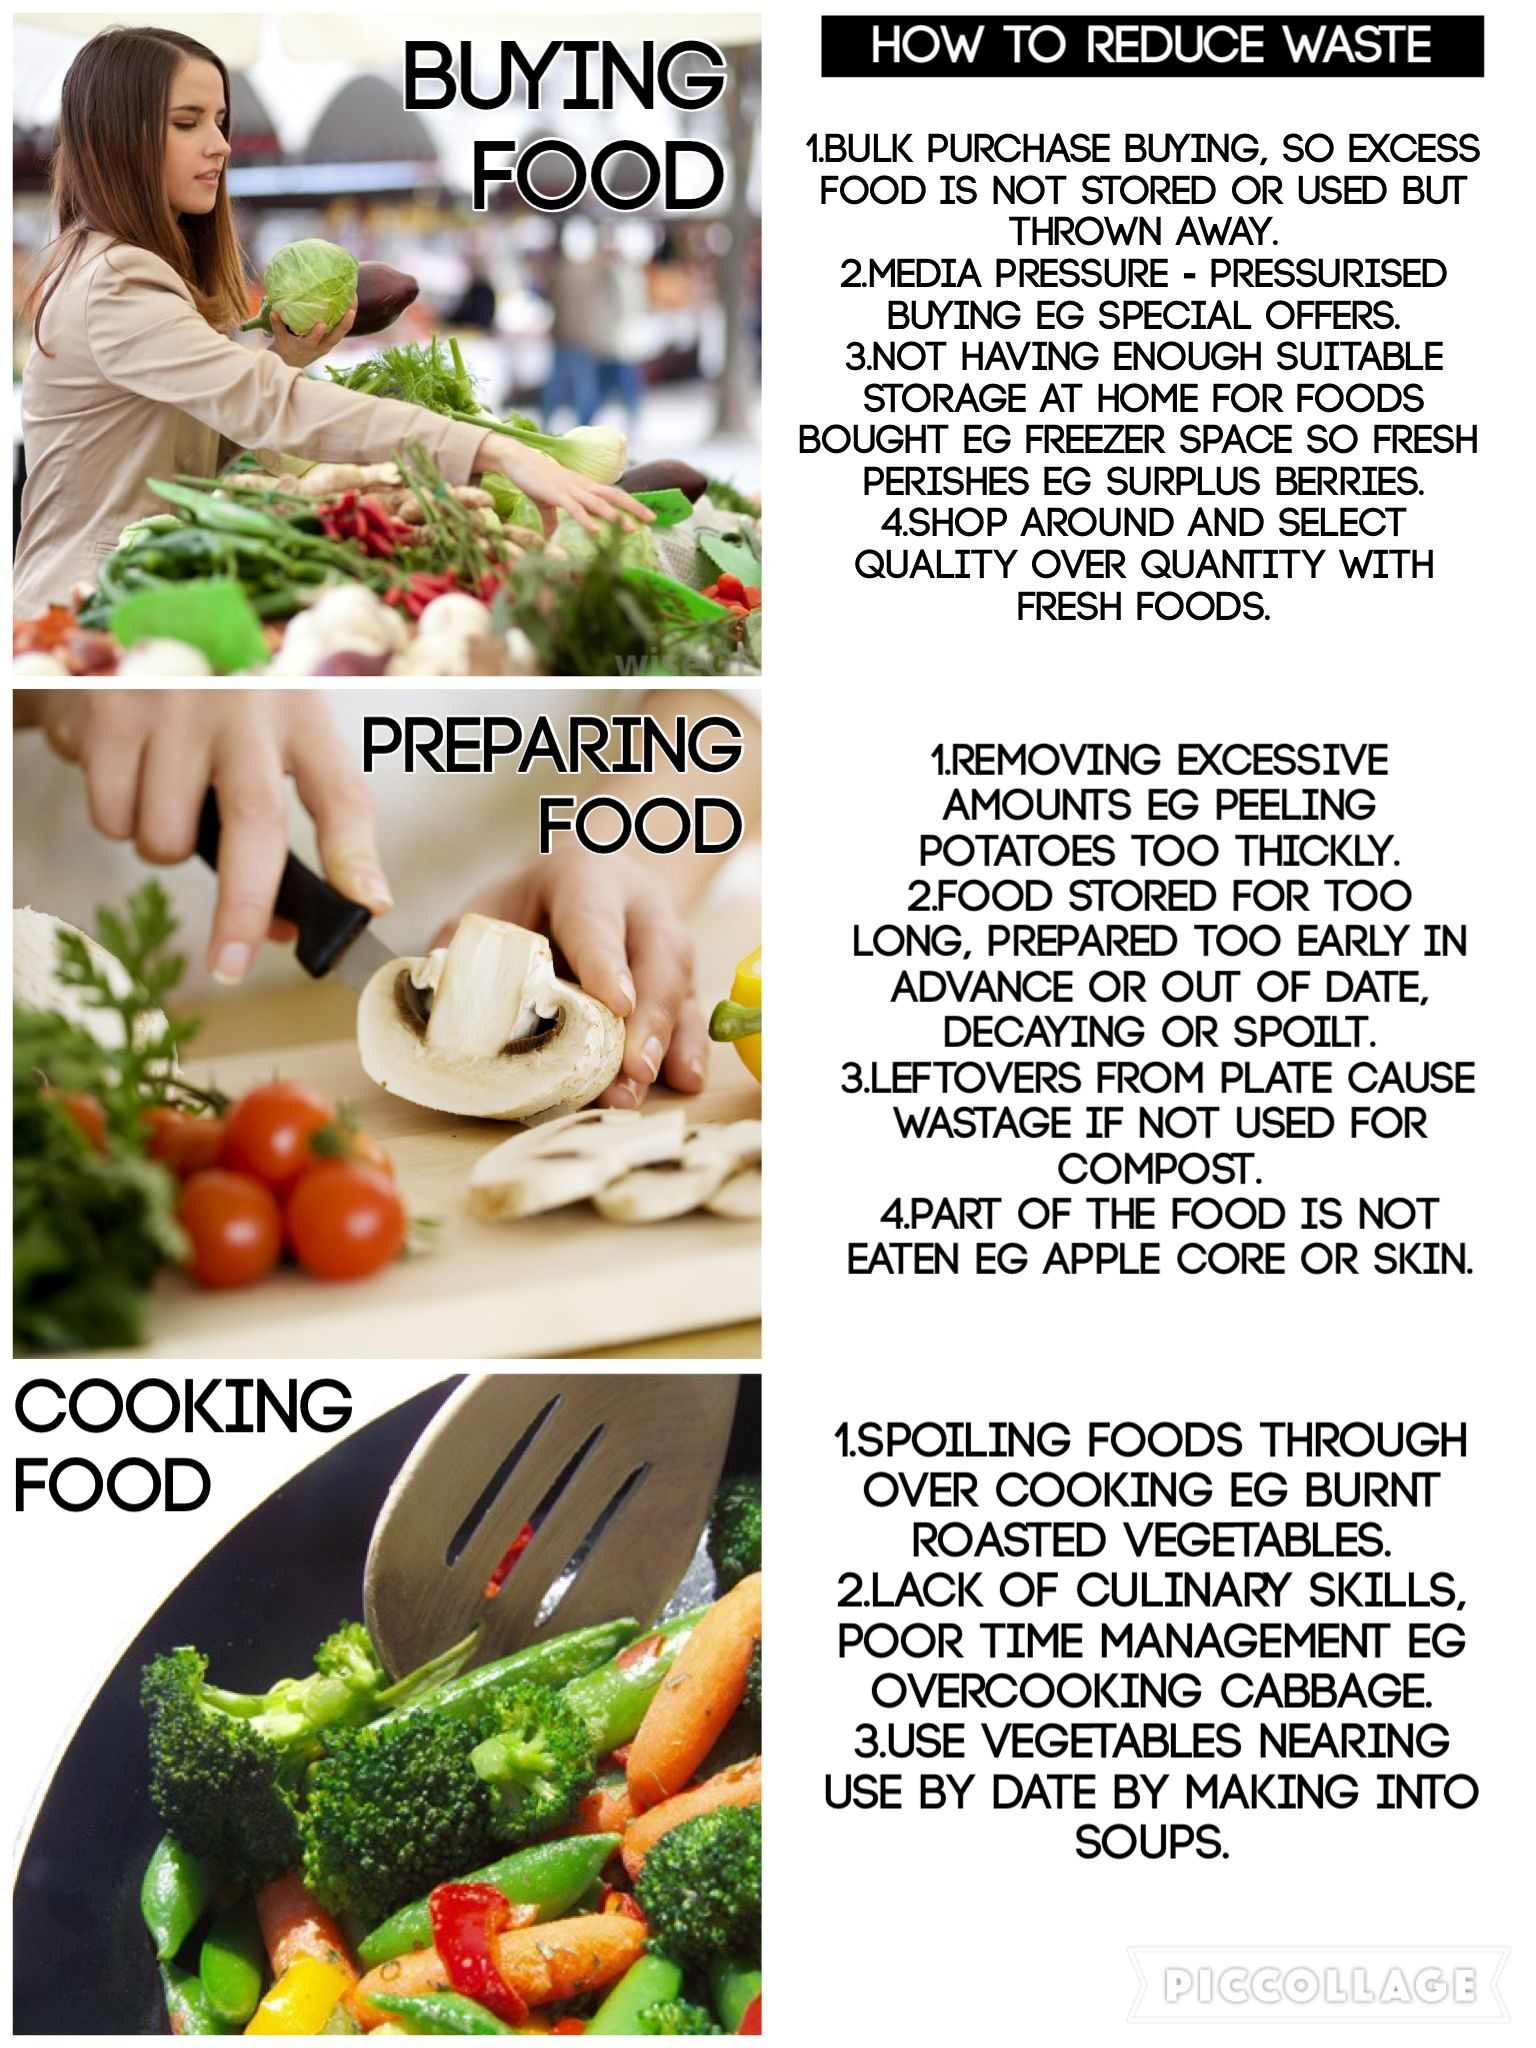 How to reduce food waste when buying preparing cooking aqa gcse how to reduce food waste when buying preparing cooking aqa gcse food preparation nutrition specimen paper 2015 forumfinder Images